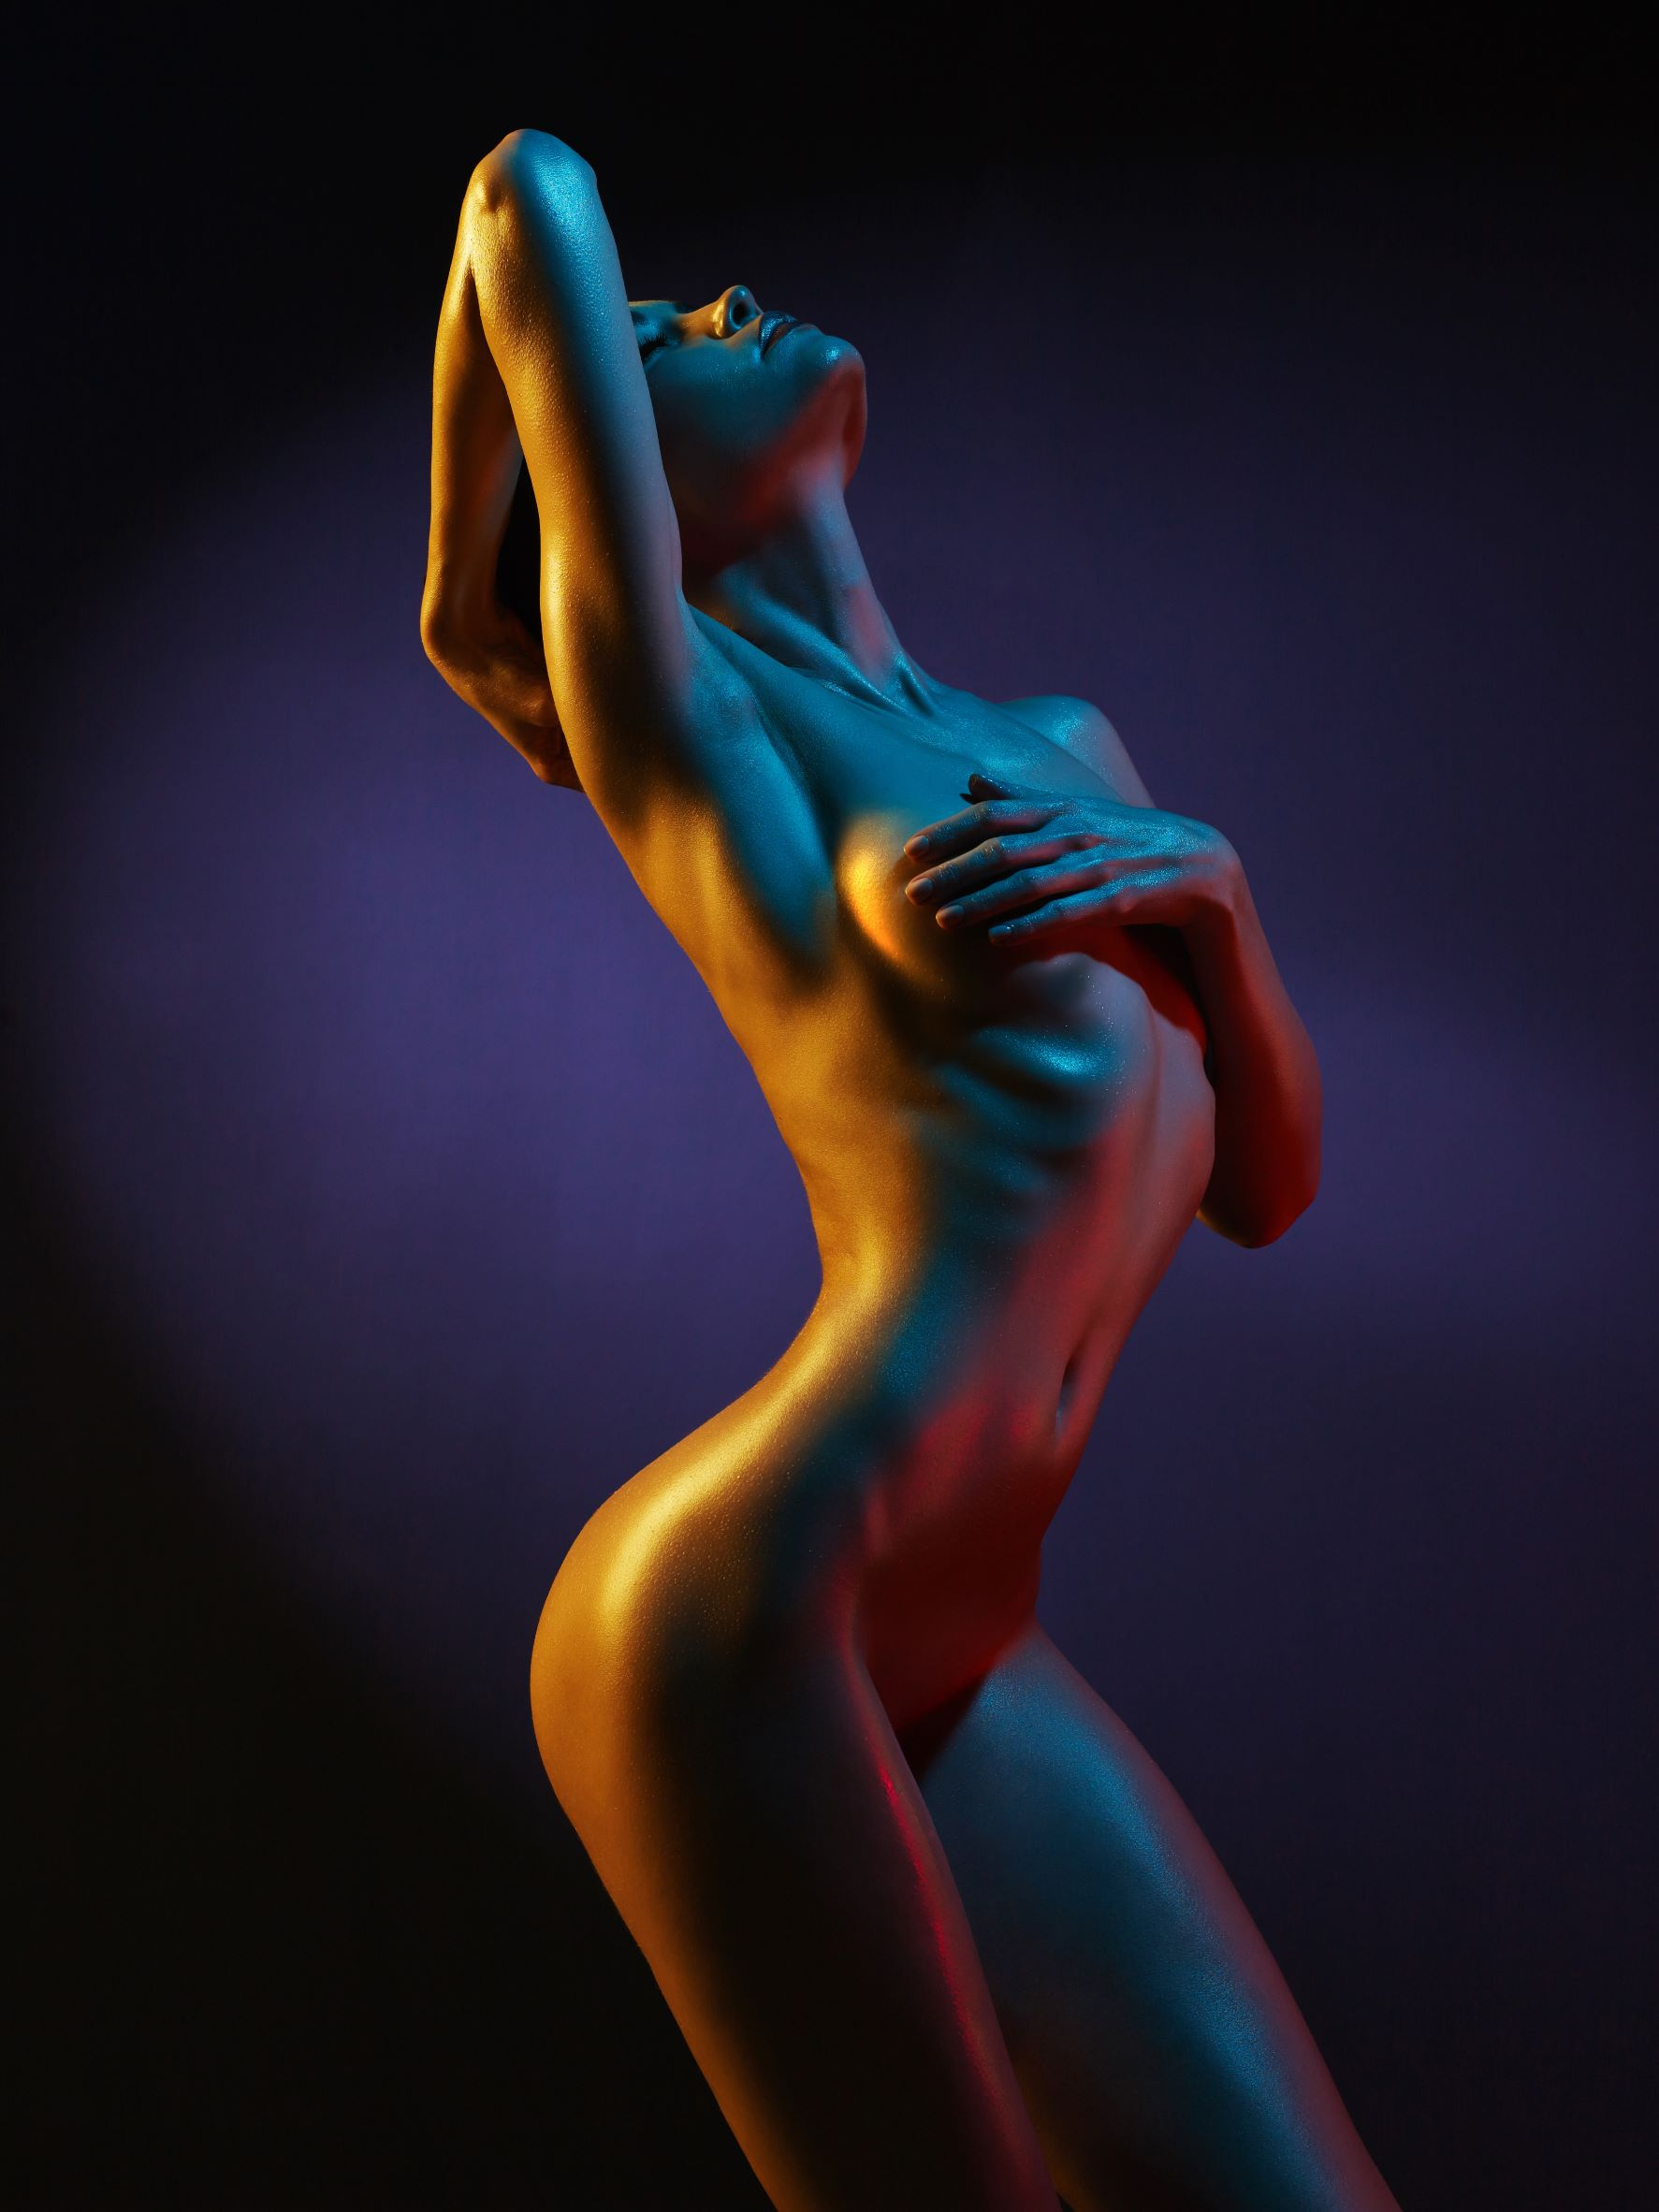 Nude woman leaning back covering breasts with hands